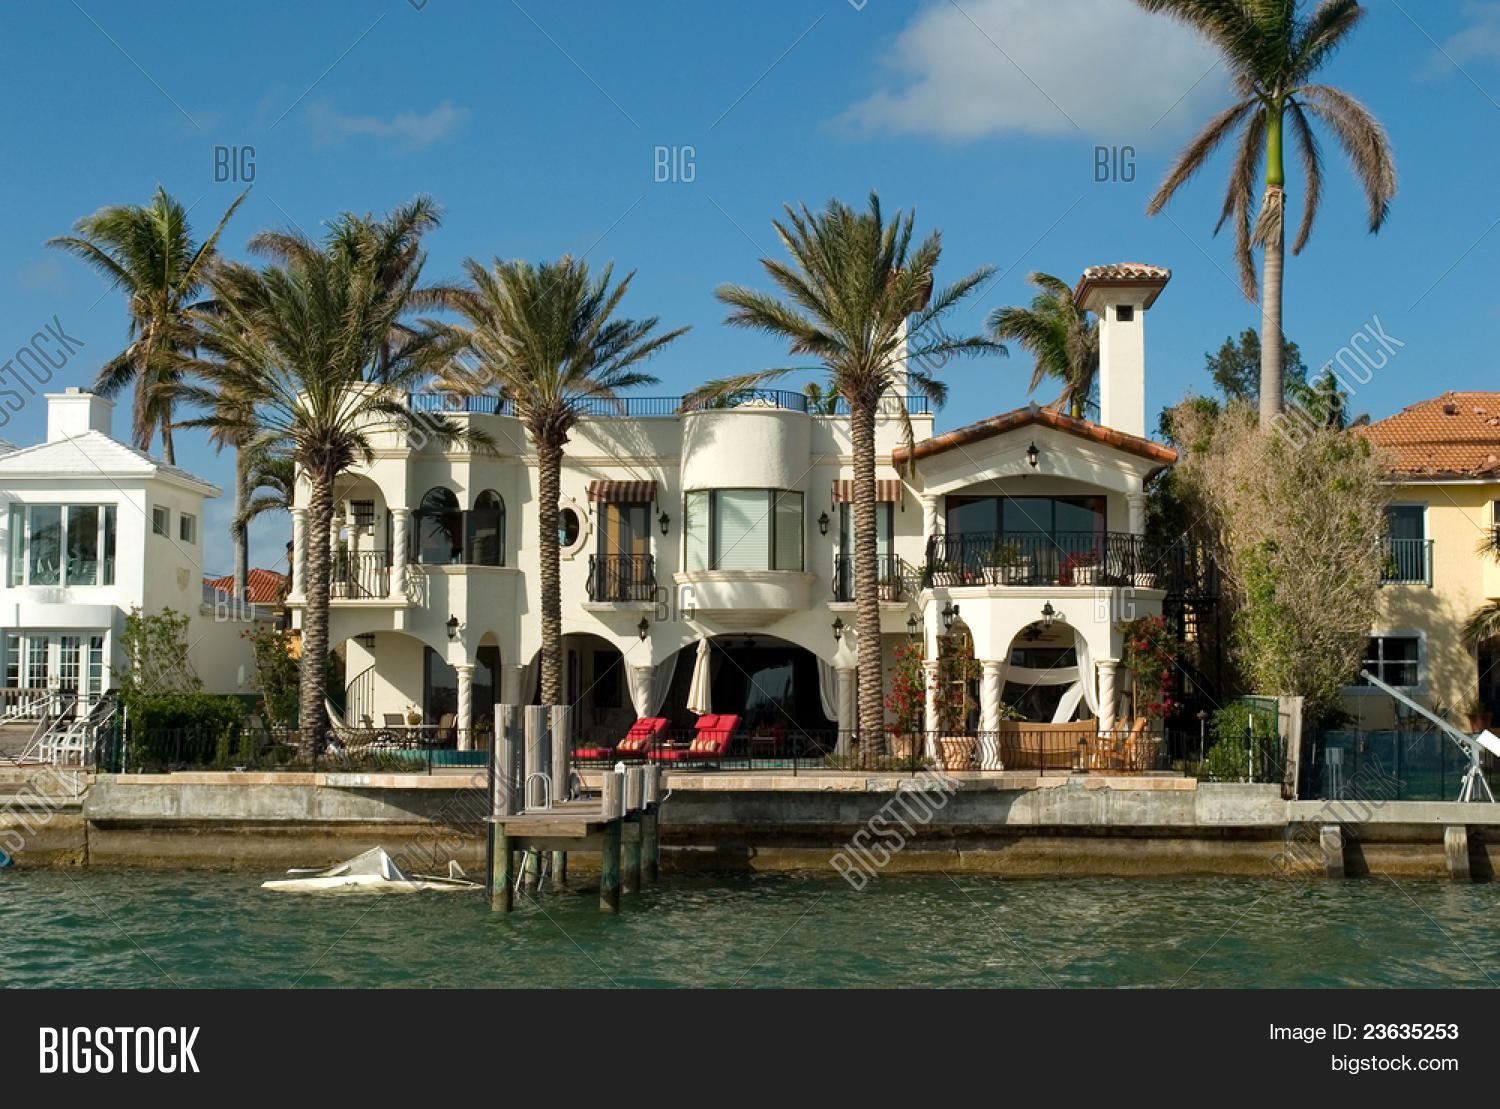 Expensive house by bay miami 39 s key image photo bigstock for Big houses in miami